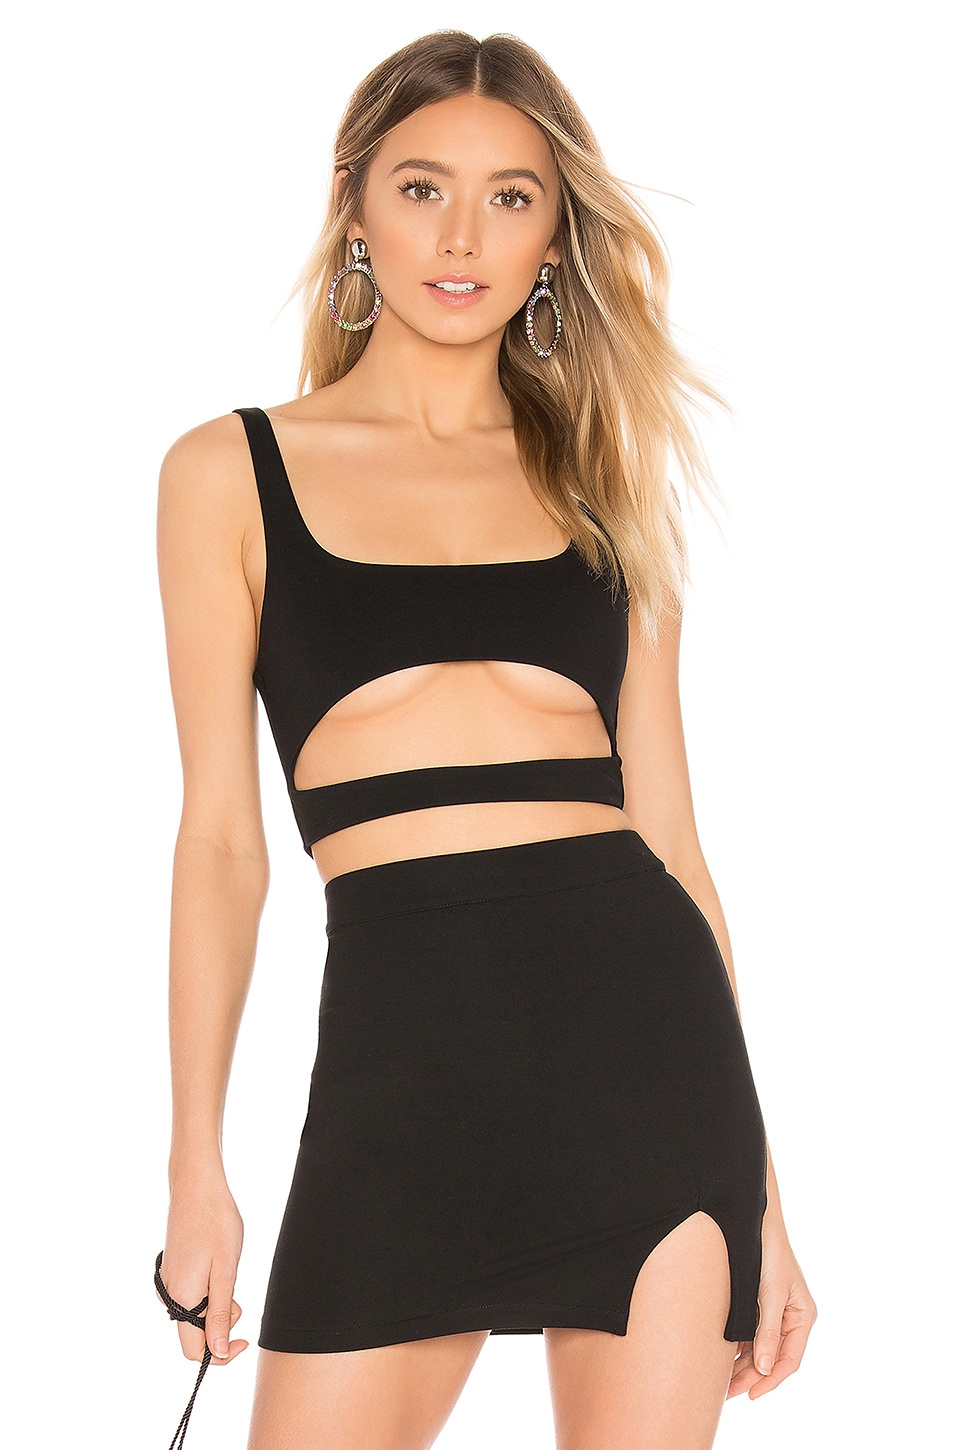 h:ours Montee Crop Top in Black